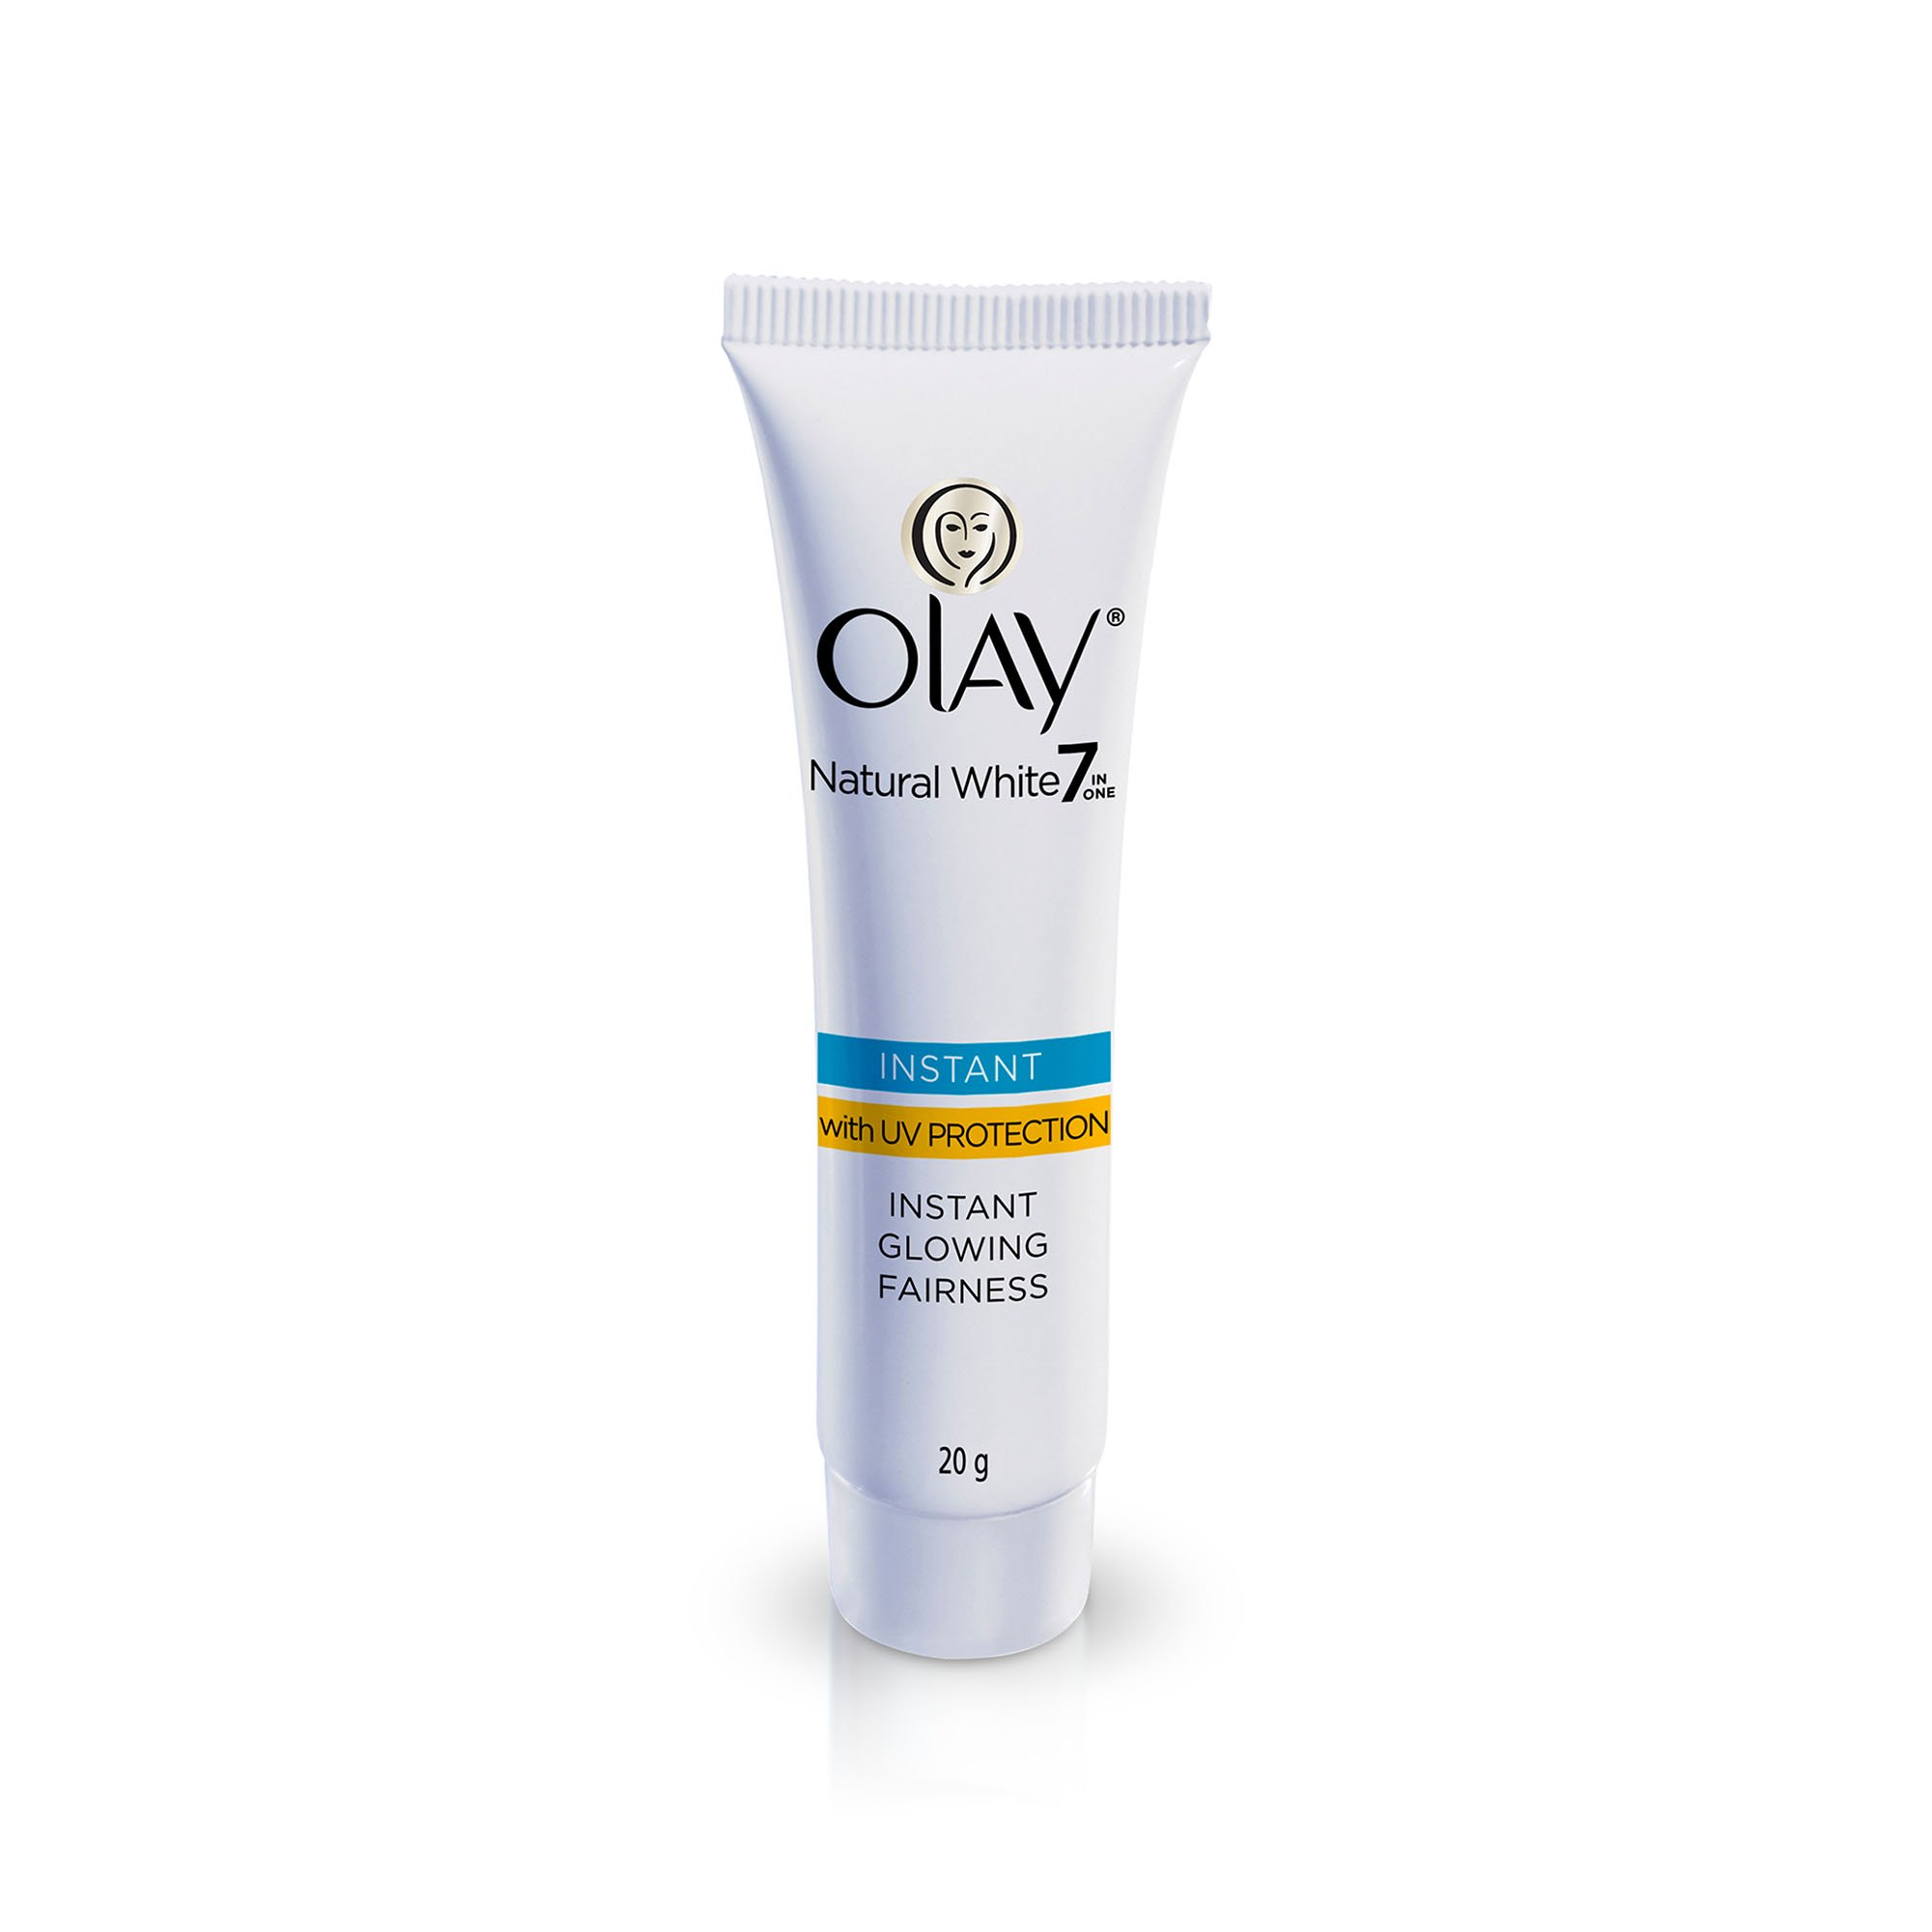 Olay Natural White Light Instant Glowing Fairness Skin Cream, 20gm product image